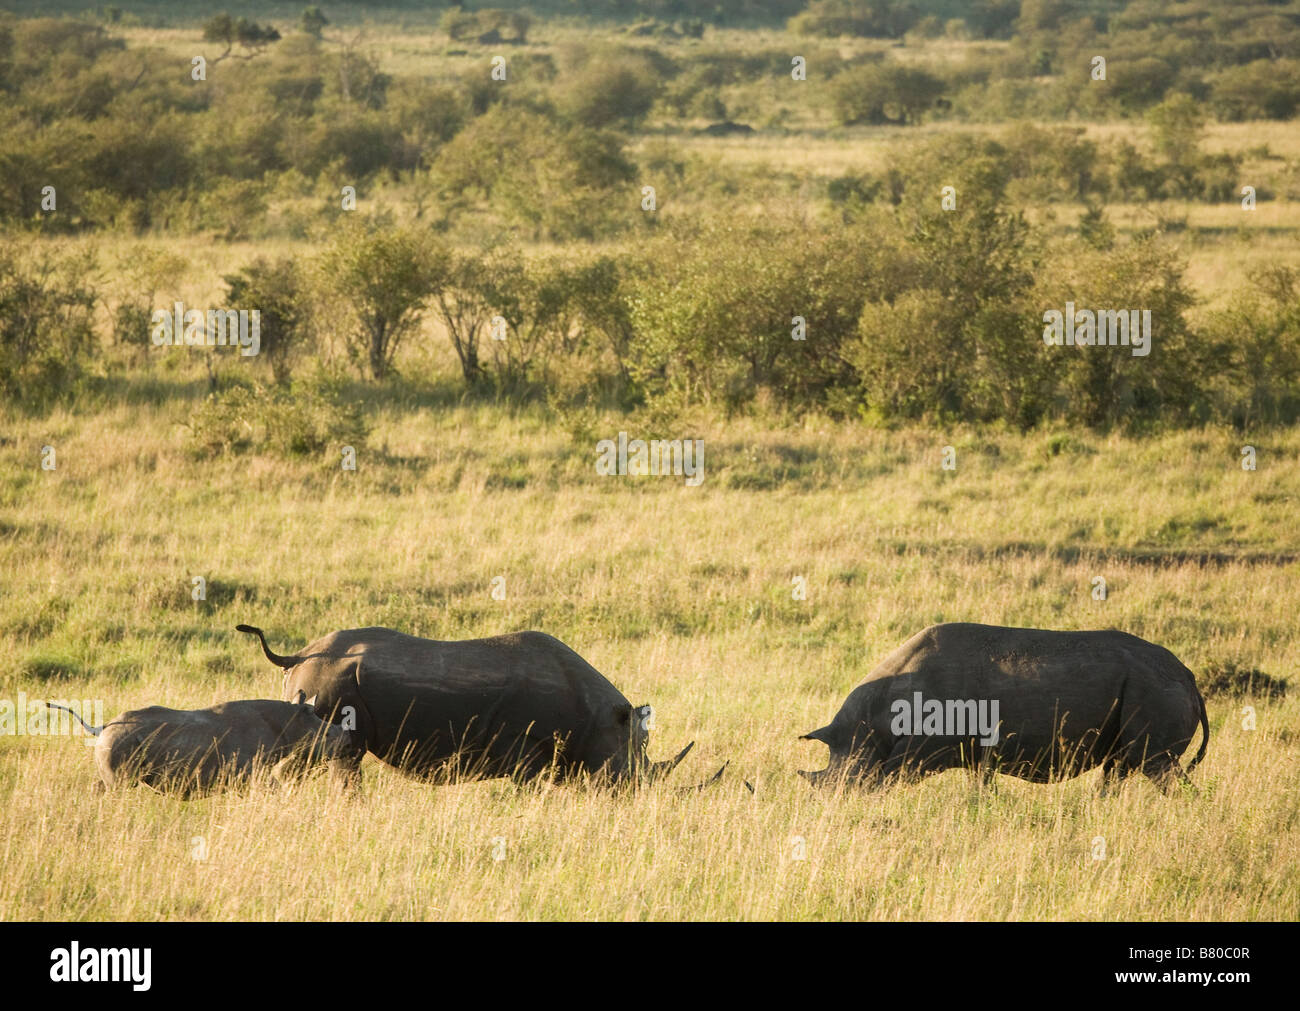 A Black Rhinoceros with her calf challenging the bull in the Masai Mara in Kenya - Stock Image